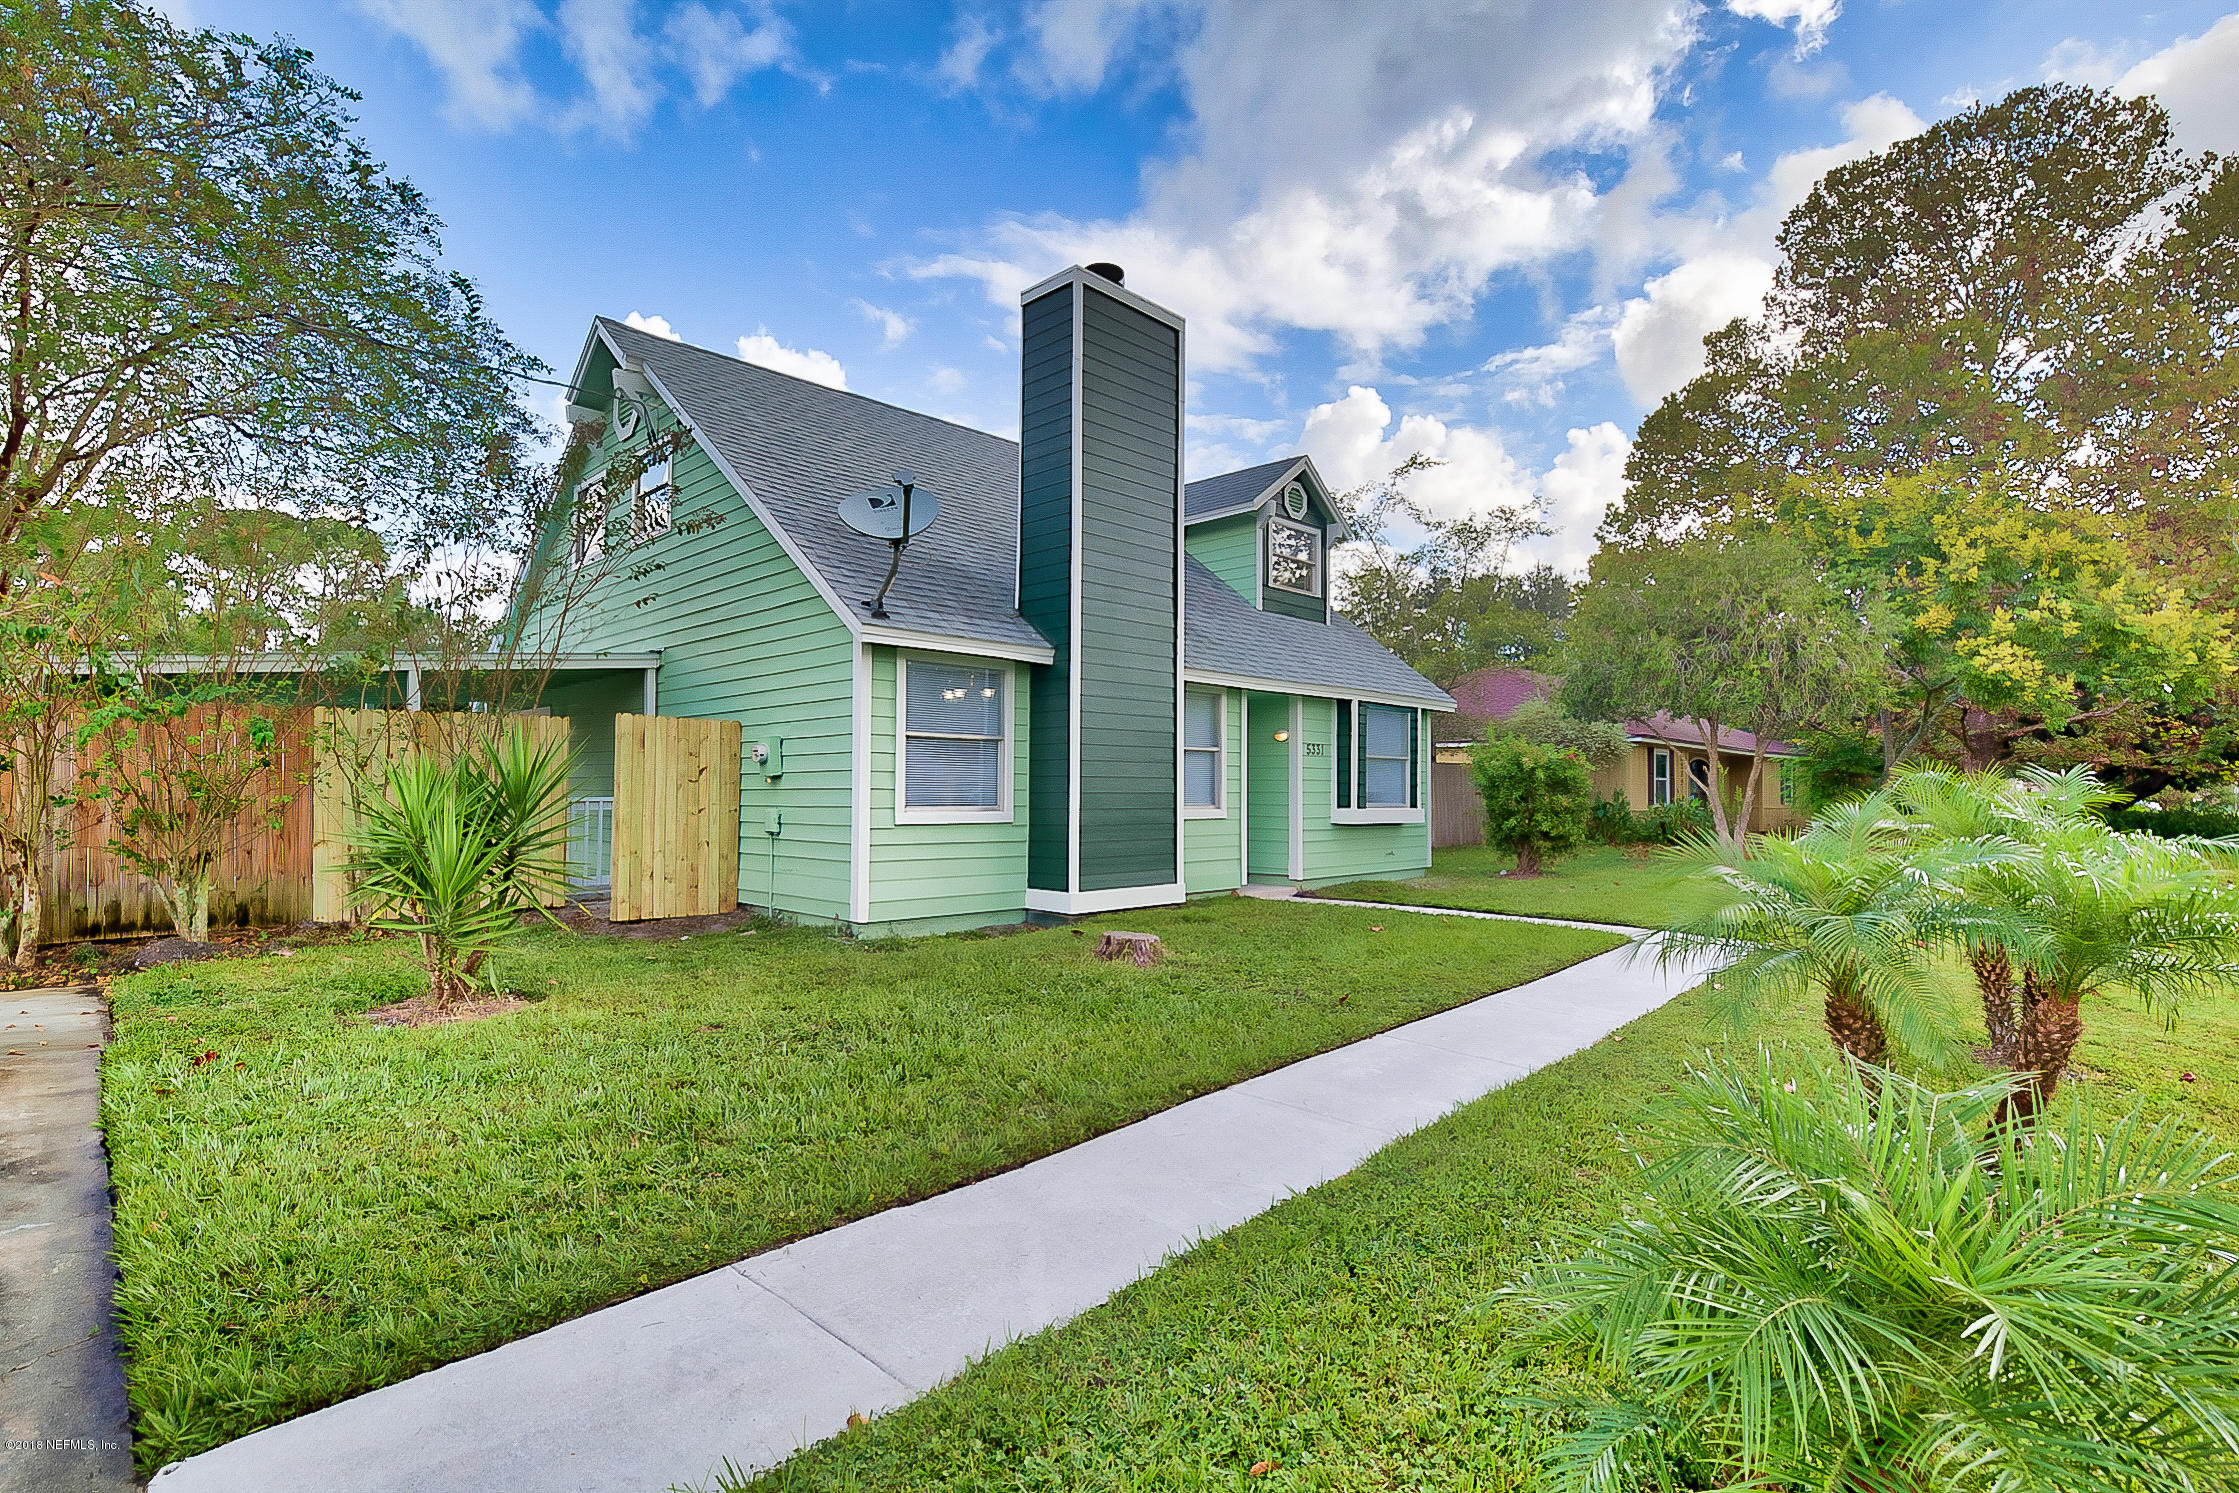 5331 THOROUGHBRED, JACKSONVILLE, FLORIDA 32257, 3 Bedrooms Bedrooms, ,2 BathroomsBathrooms,Residential - single family,For sale,THOROUGHBRED,959349